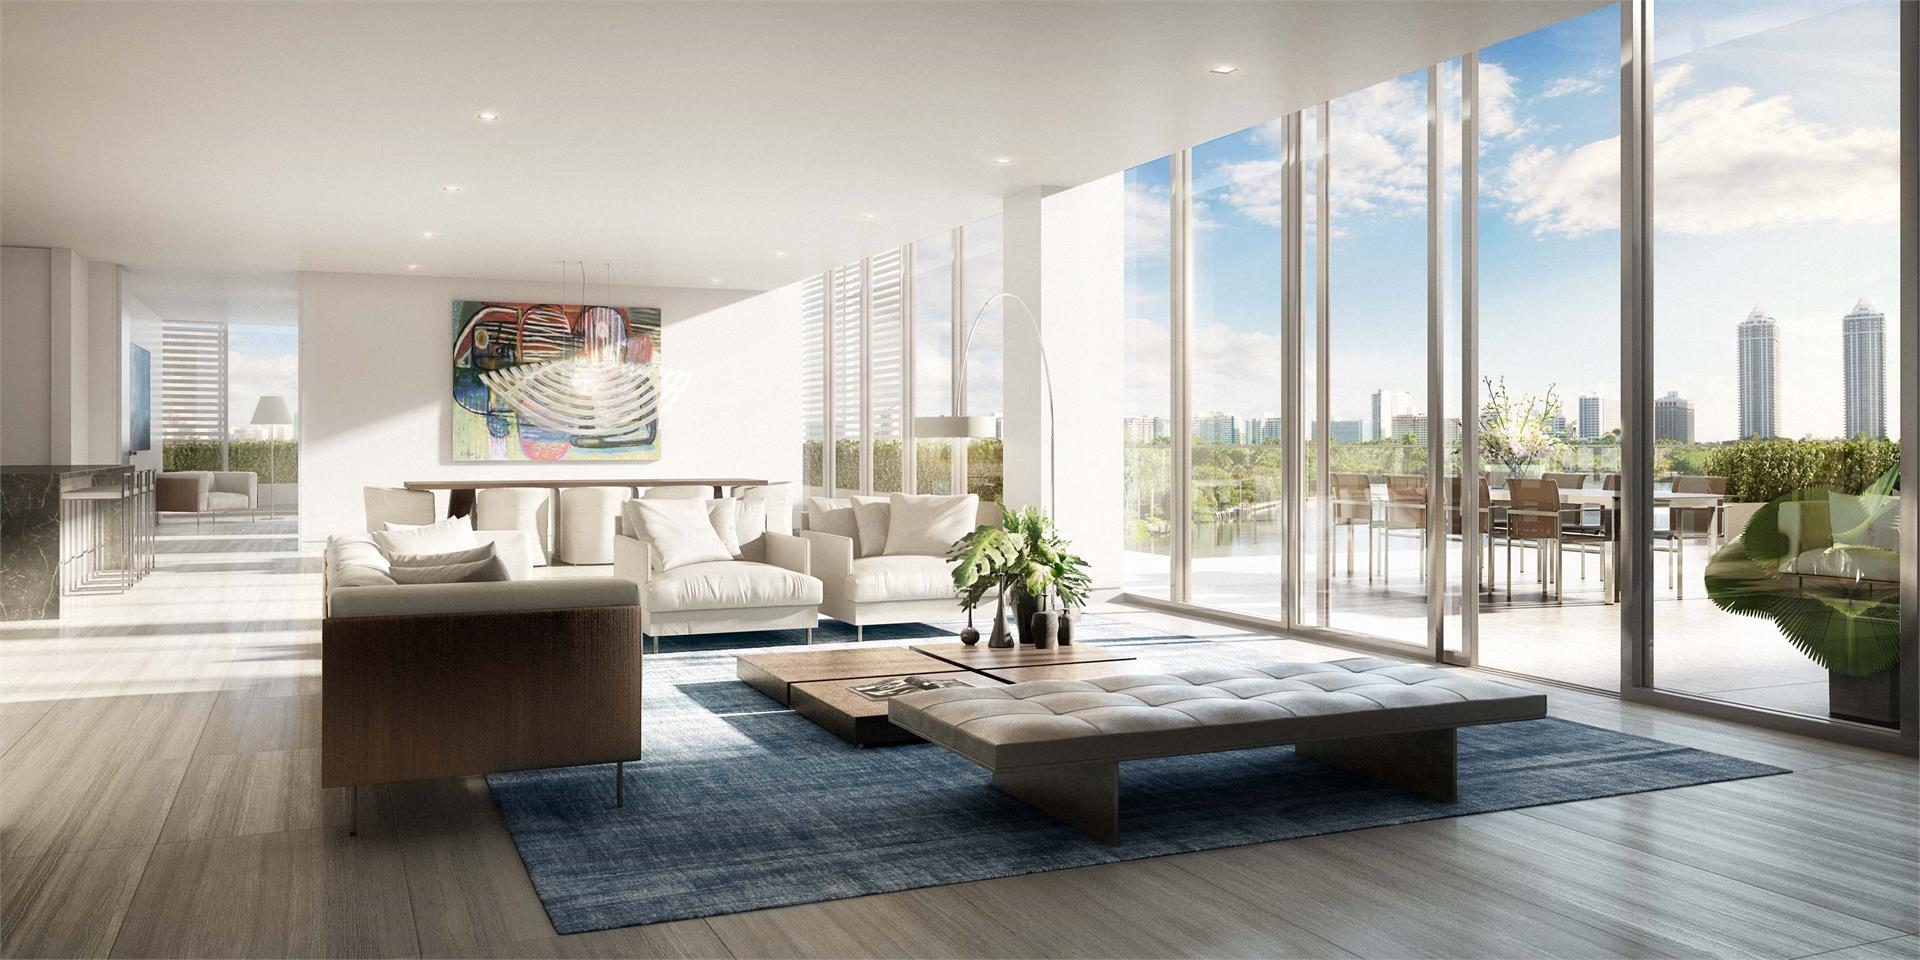 The Ritz-Carlton Residences - Image 16